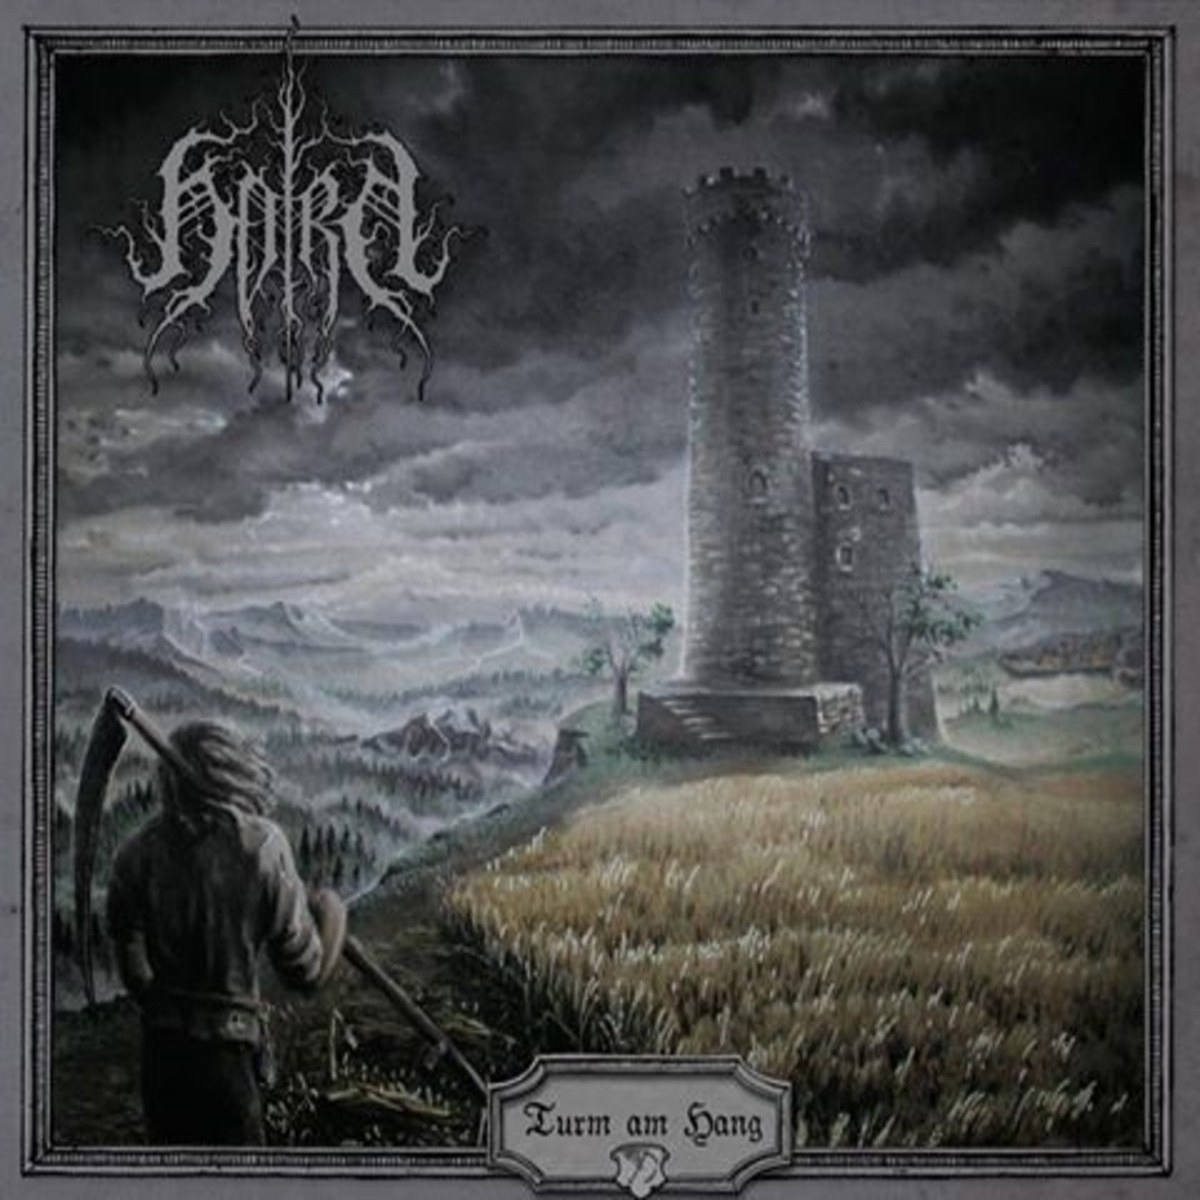 Review for Horn - Turm am Hang